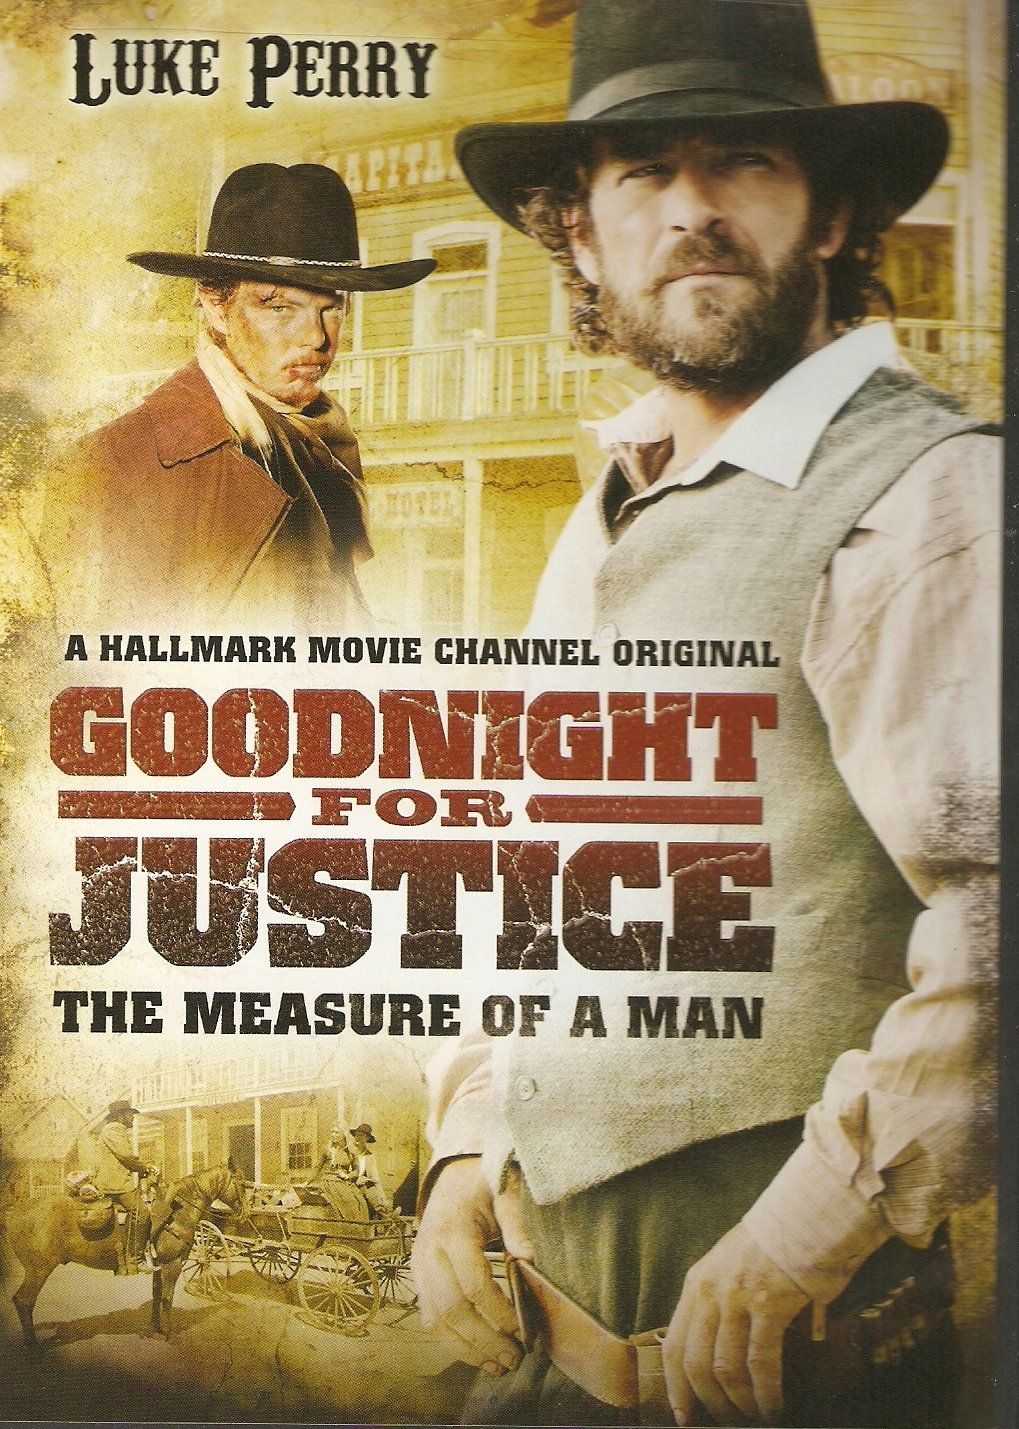 Goodnight For Justice A Measure of a Man. Luke Perry as a